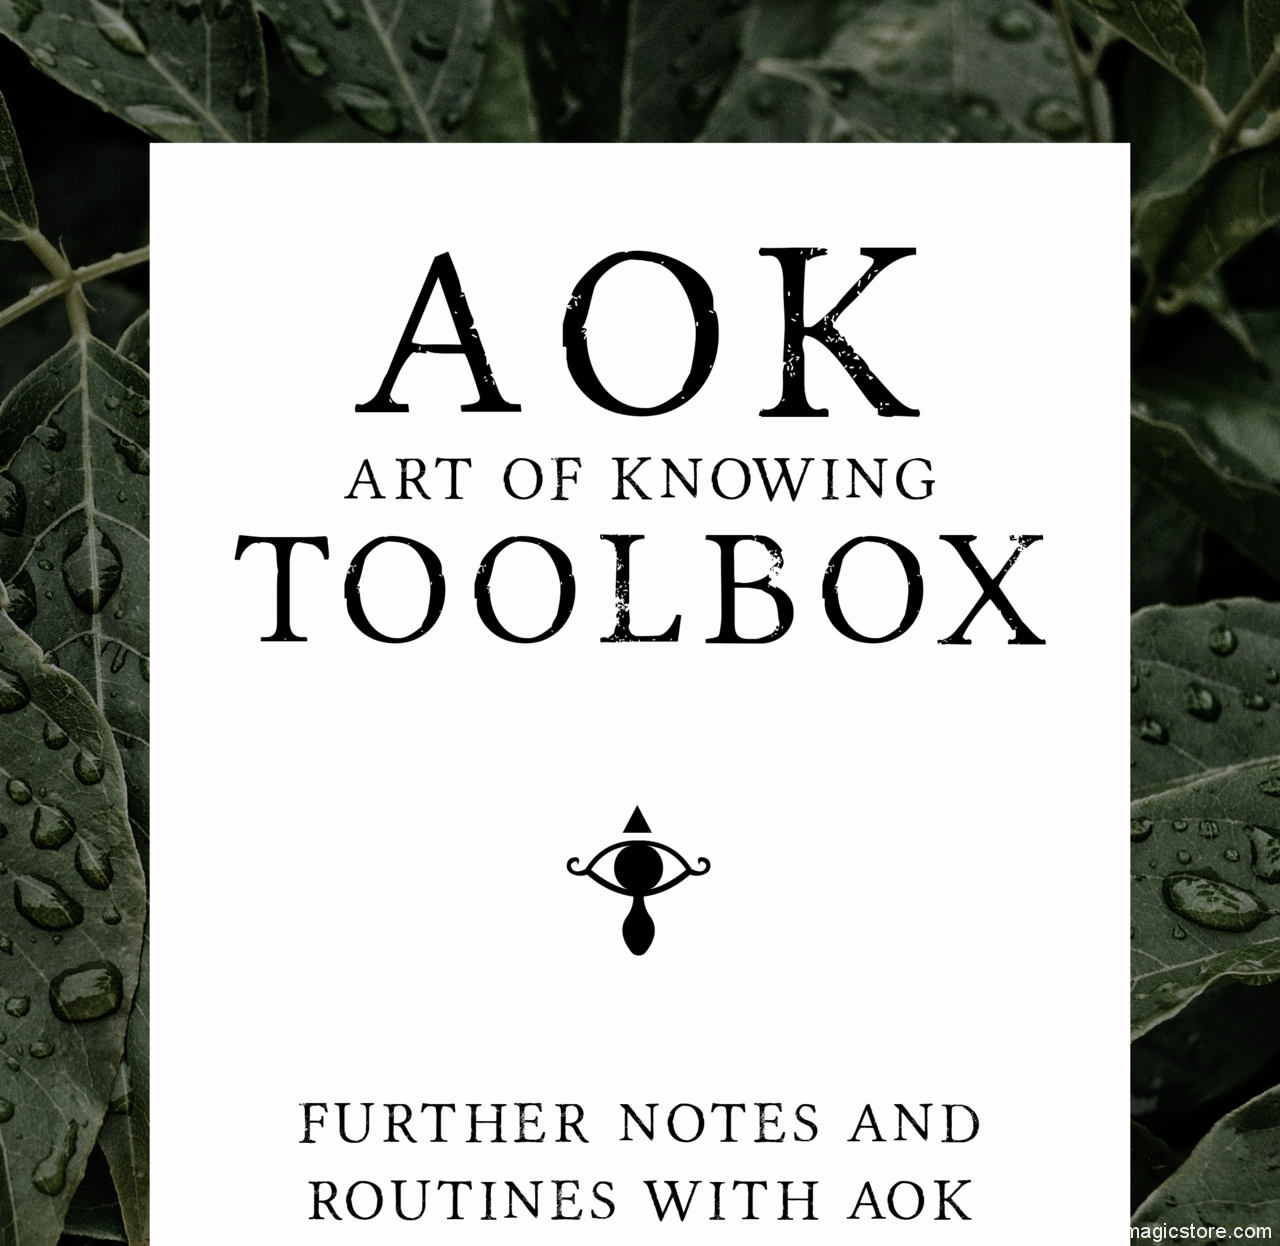 AOK Toolbox by Lewis Le Val (Instant Download)